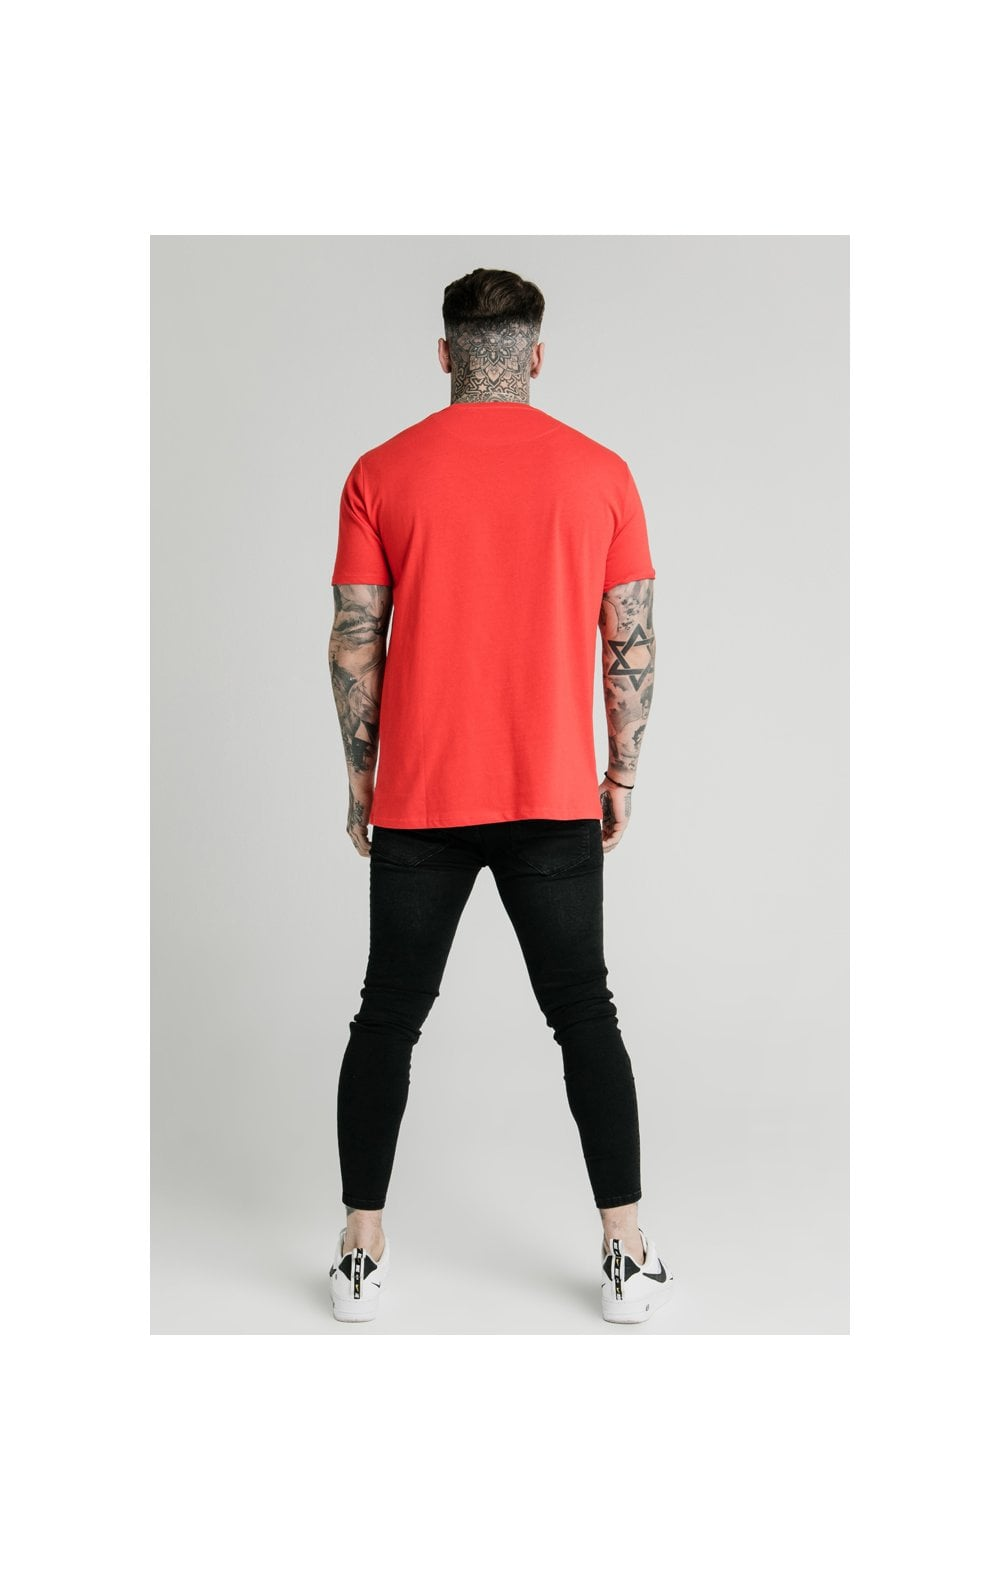 Load image into Gallery viewer, SikSilk x FaZe Apex Standard Square Hem Tee - Red (5)